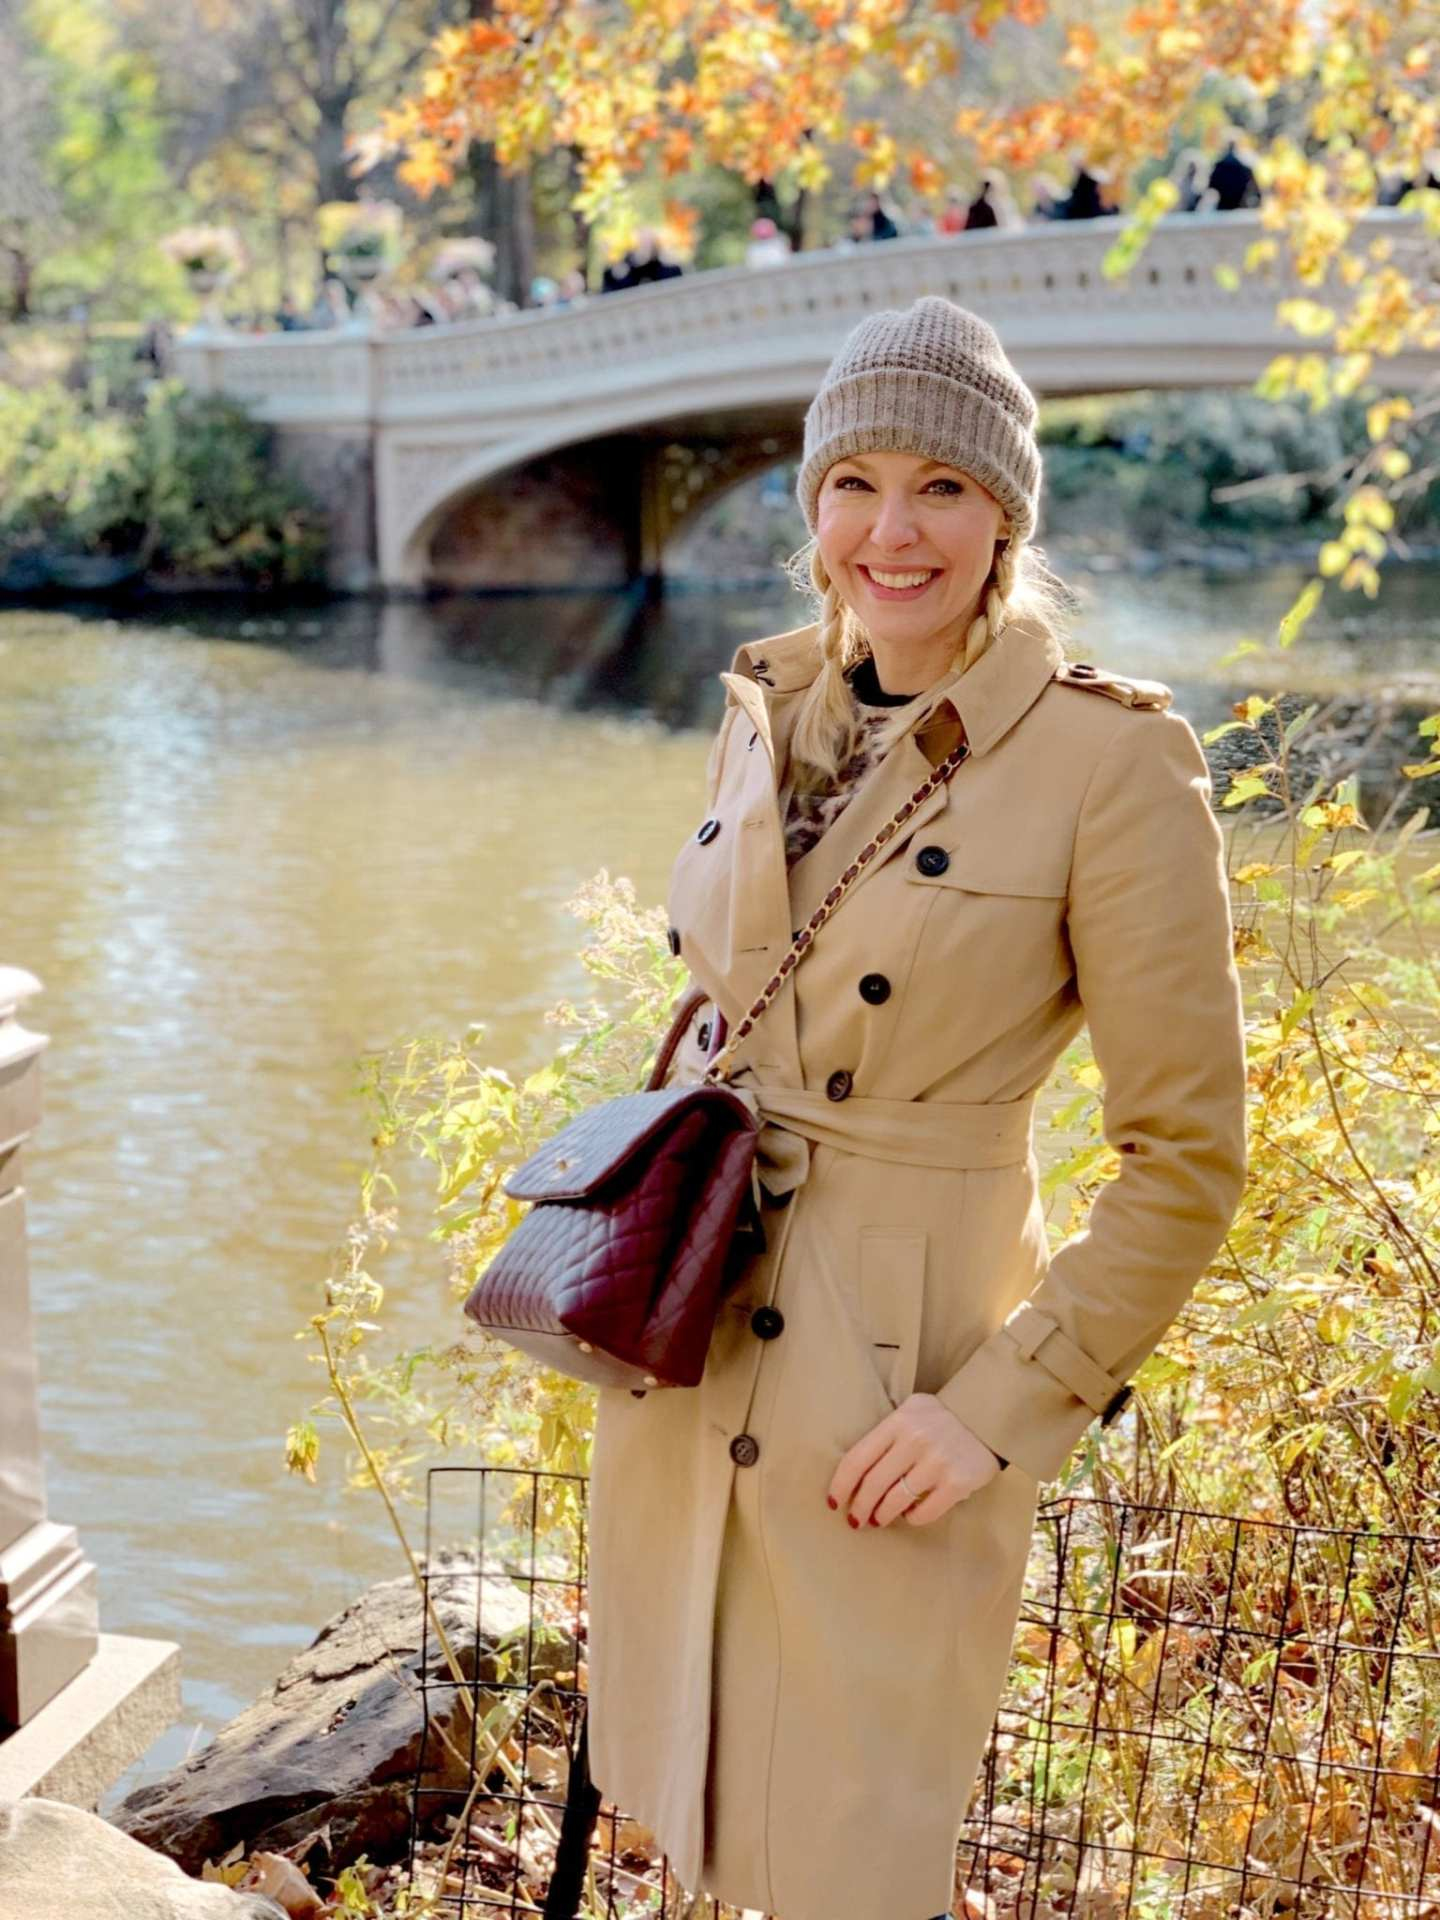 Burberry Trench Coat and Burgundy Chanel bag.